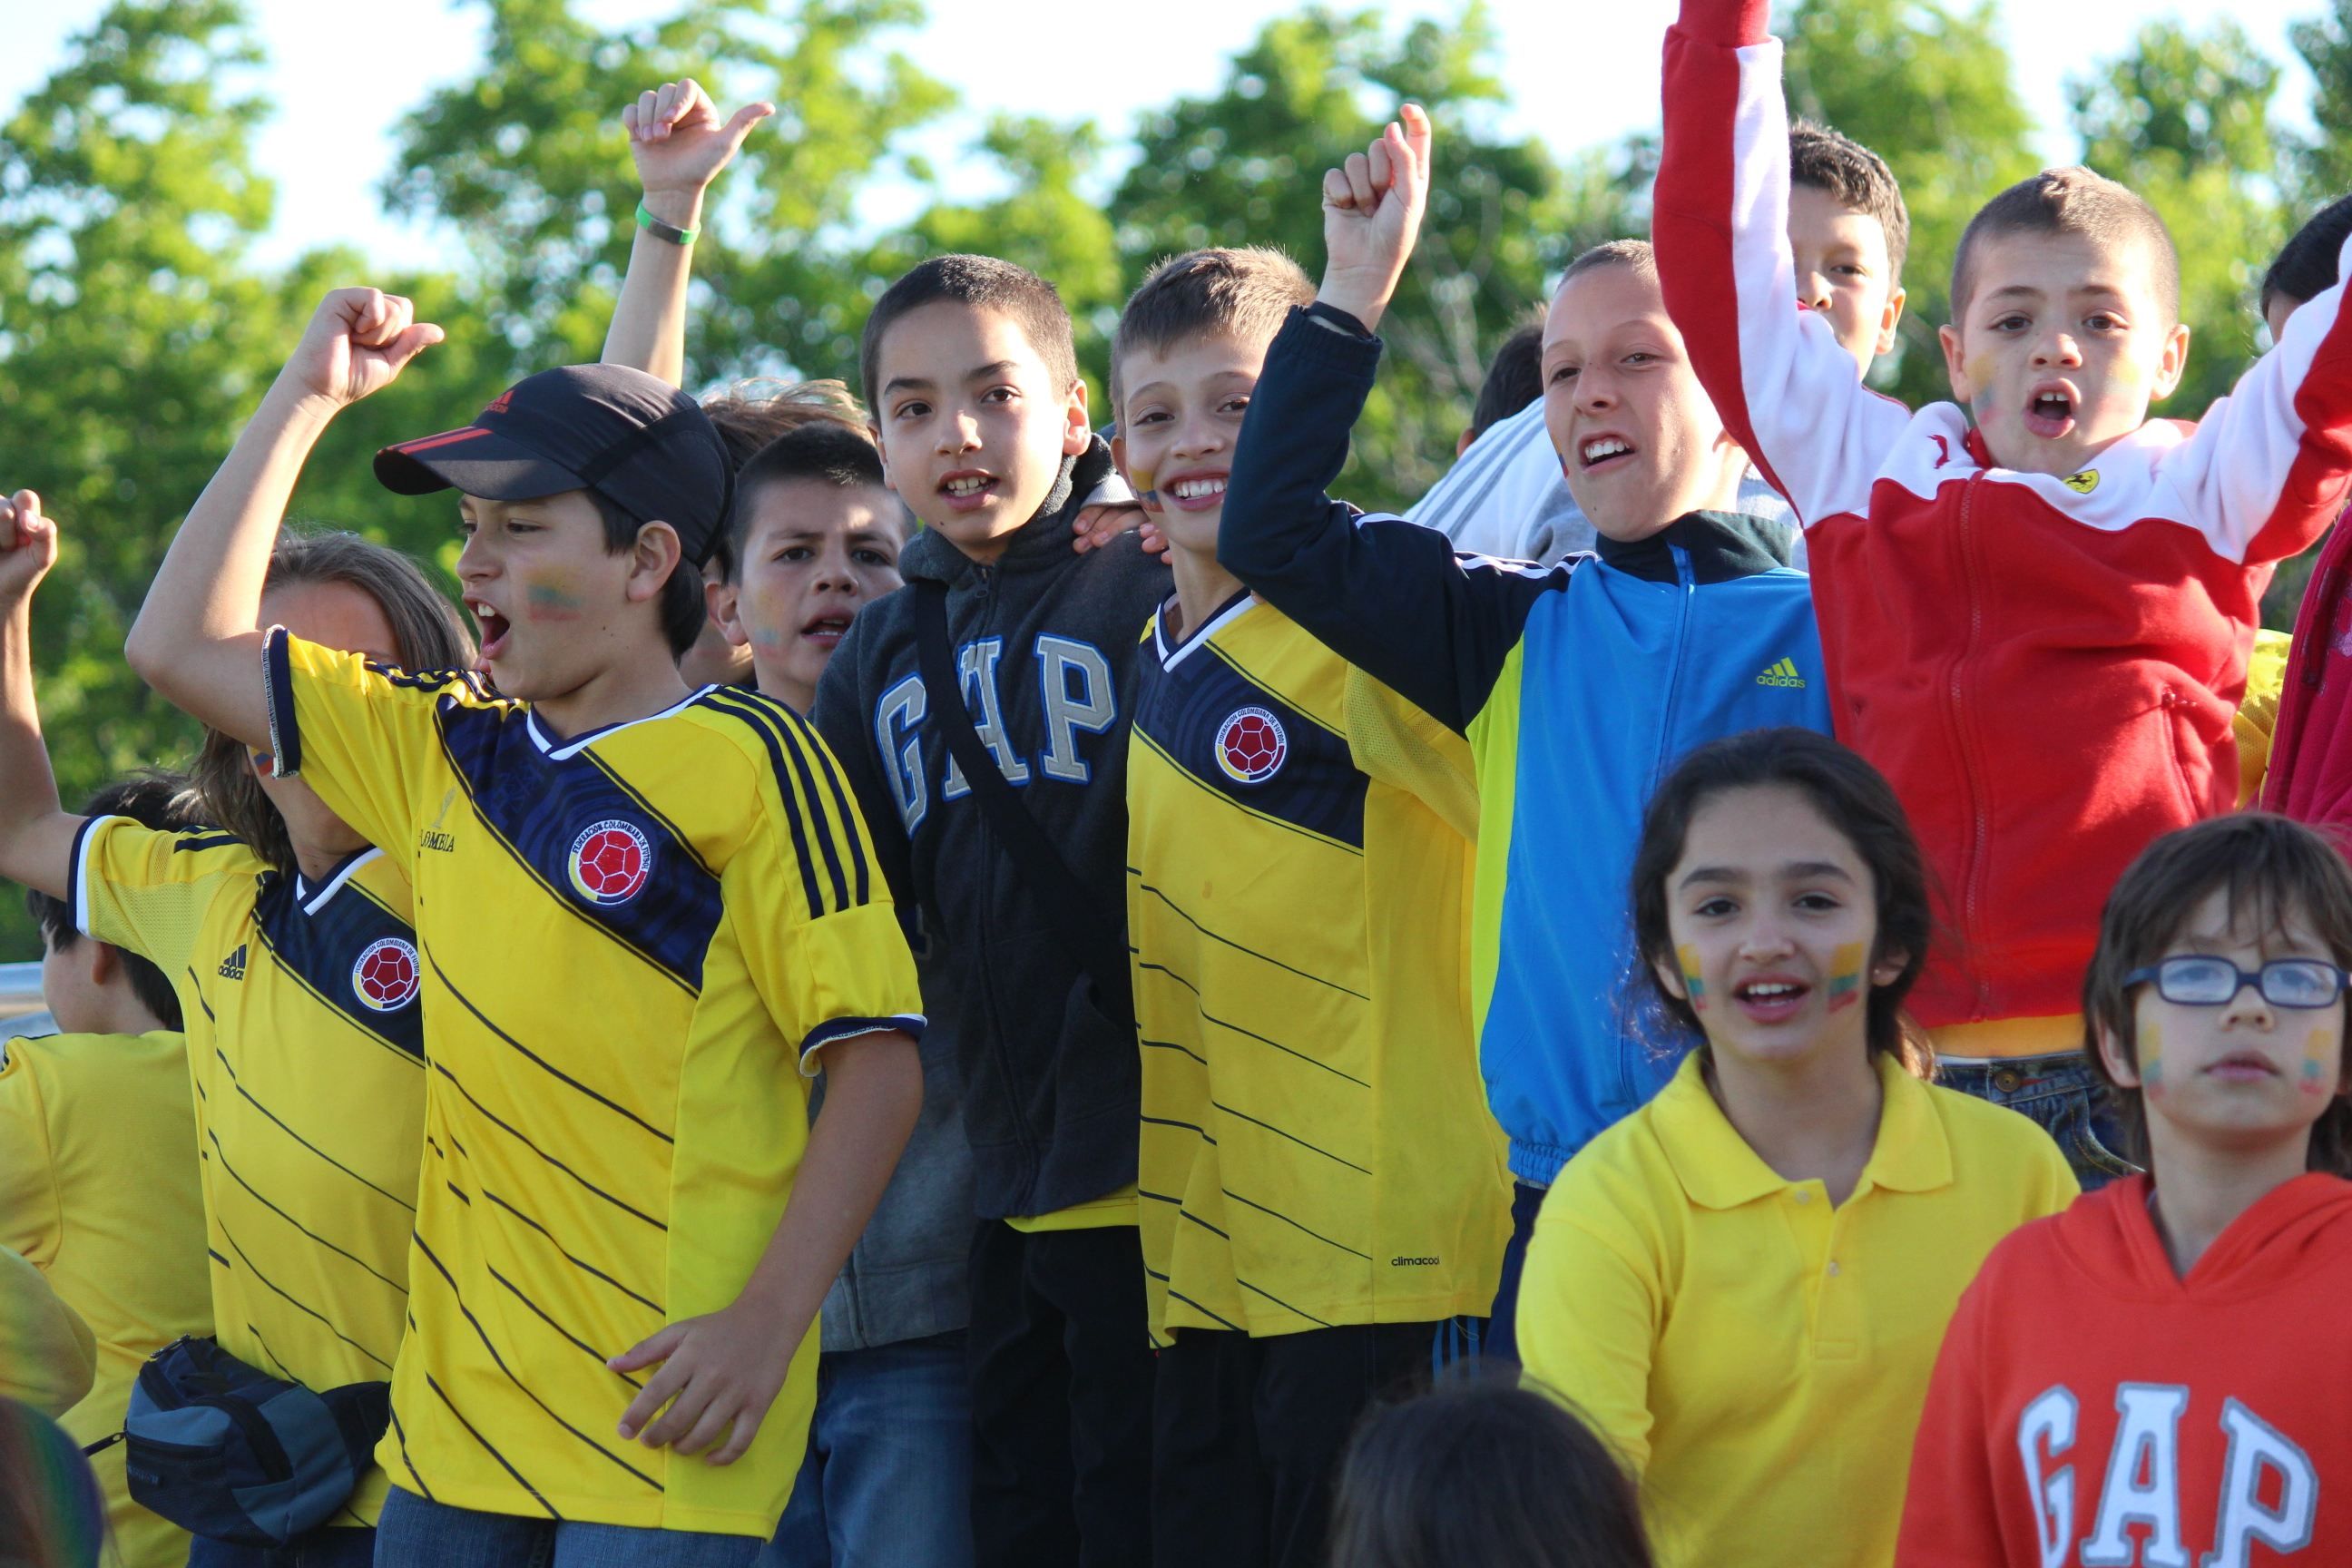 Grade 5 exchange students from Colombia taking in the Windsor Stars game at McHugh Park, June 14, 2014. (Photo by Ricardo Veneza)